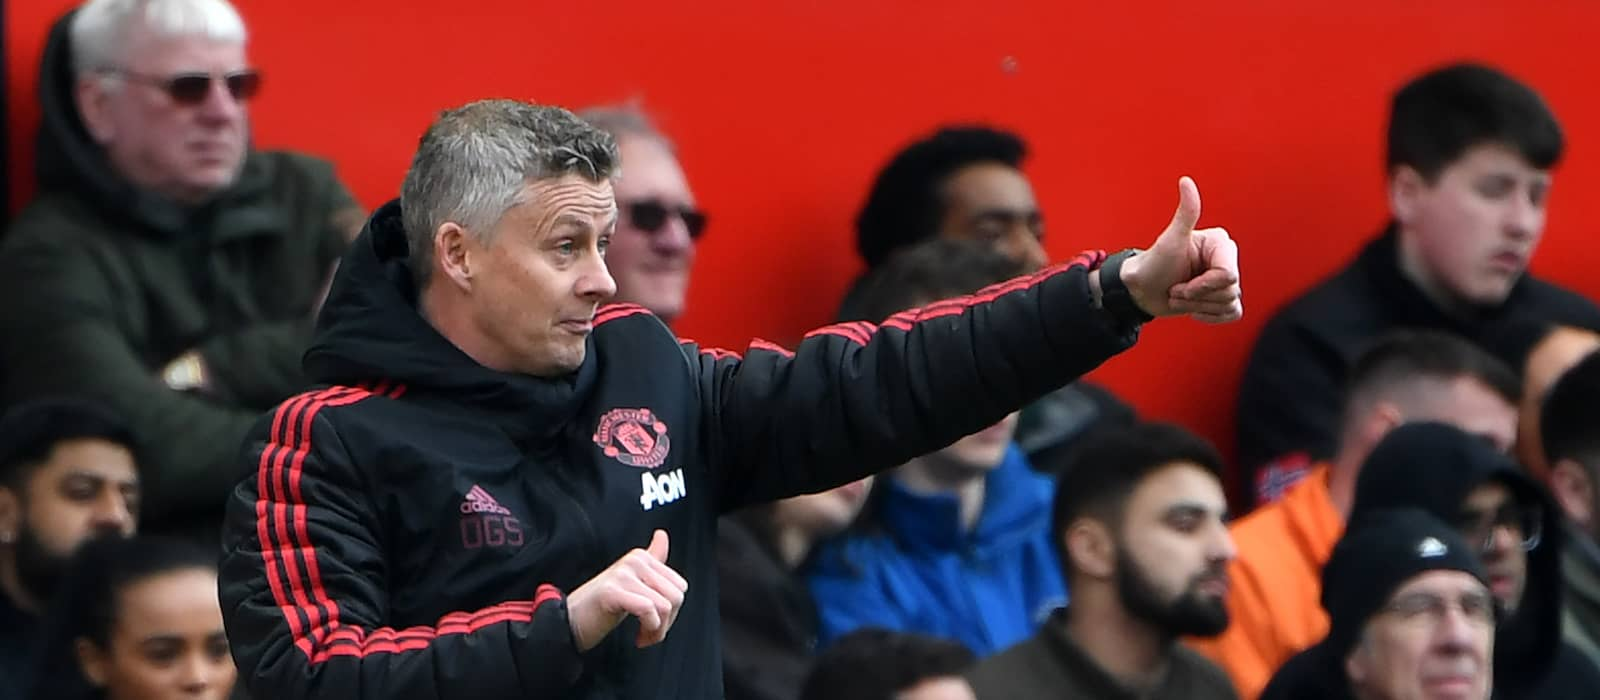 Ole Gunnar Solskjaer concerned by Manchester United squad's fitness: report